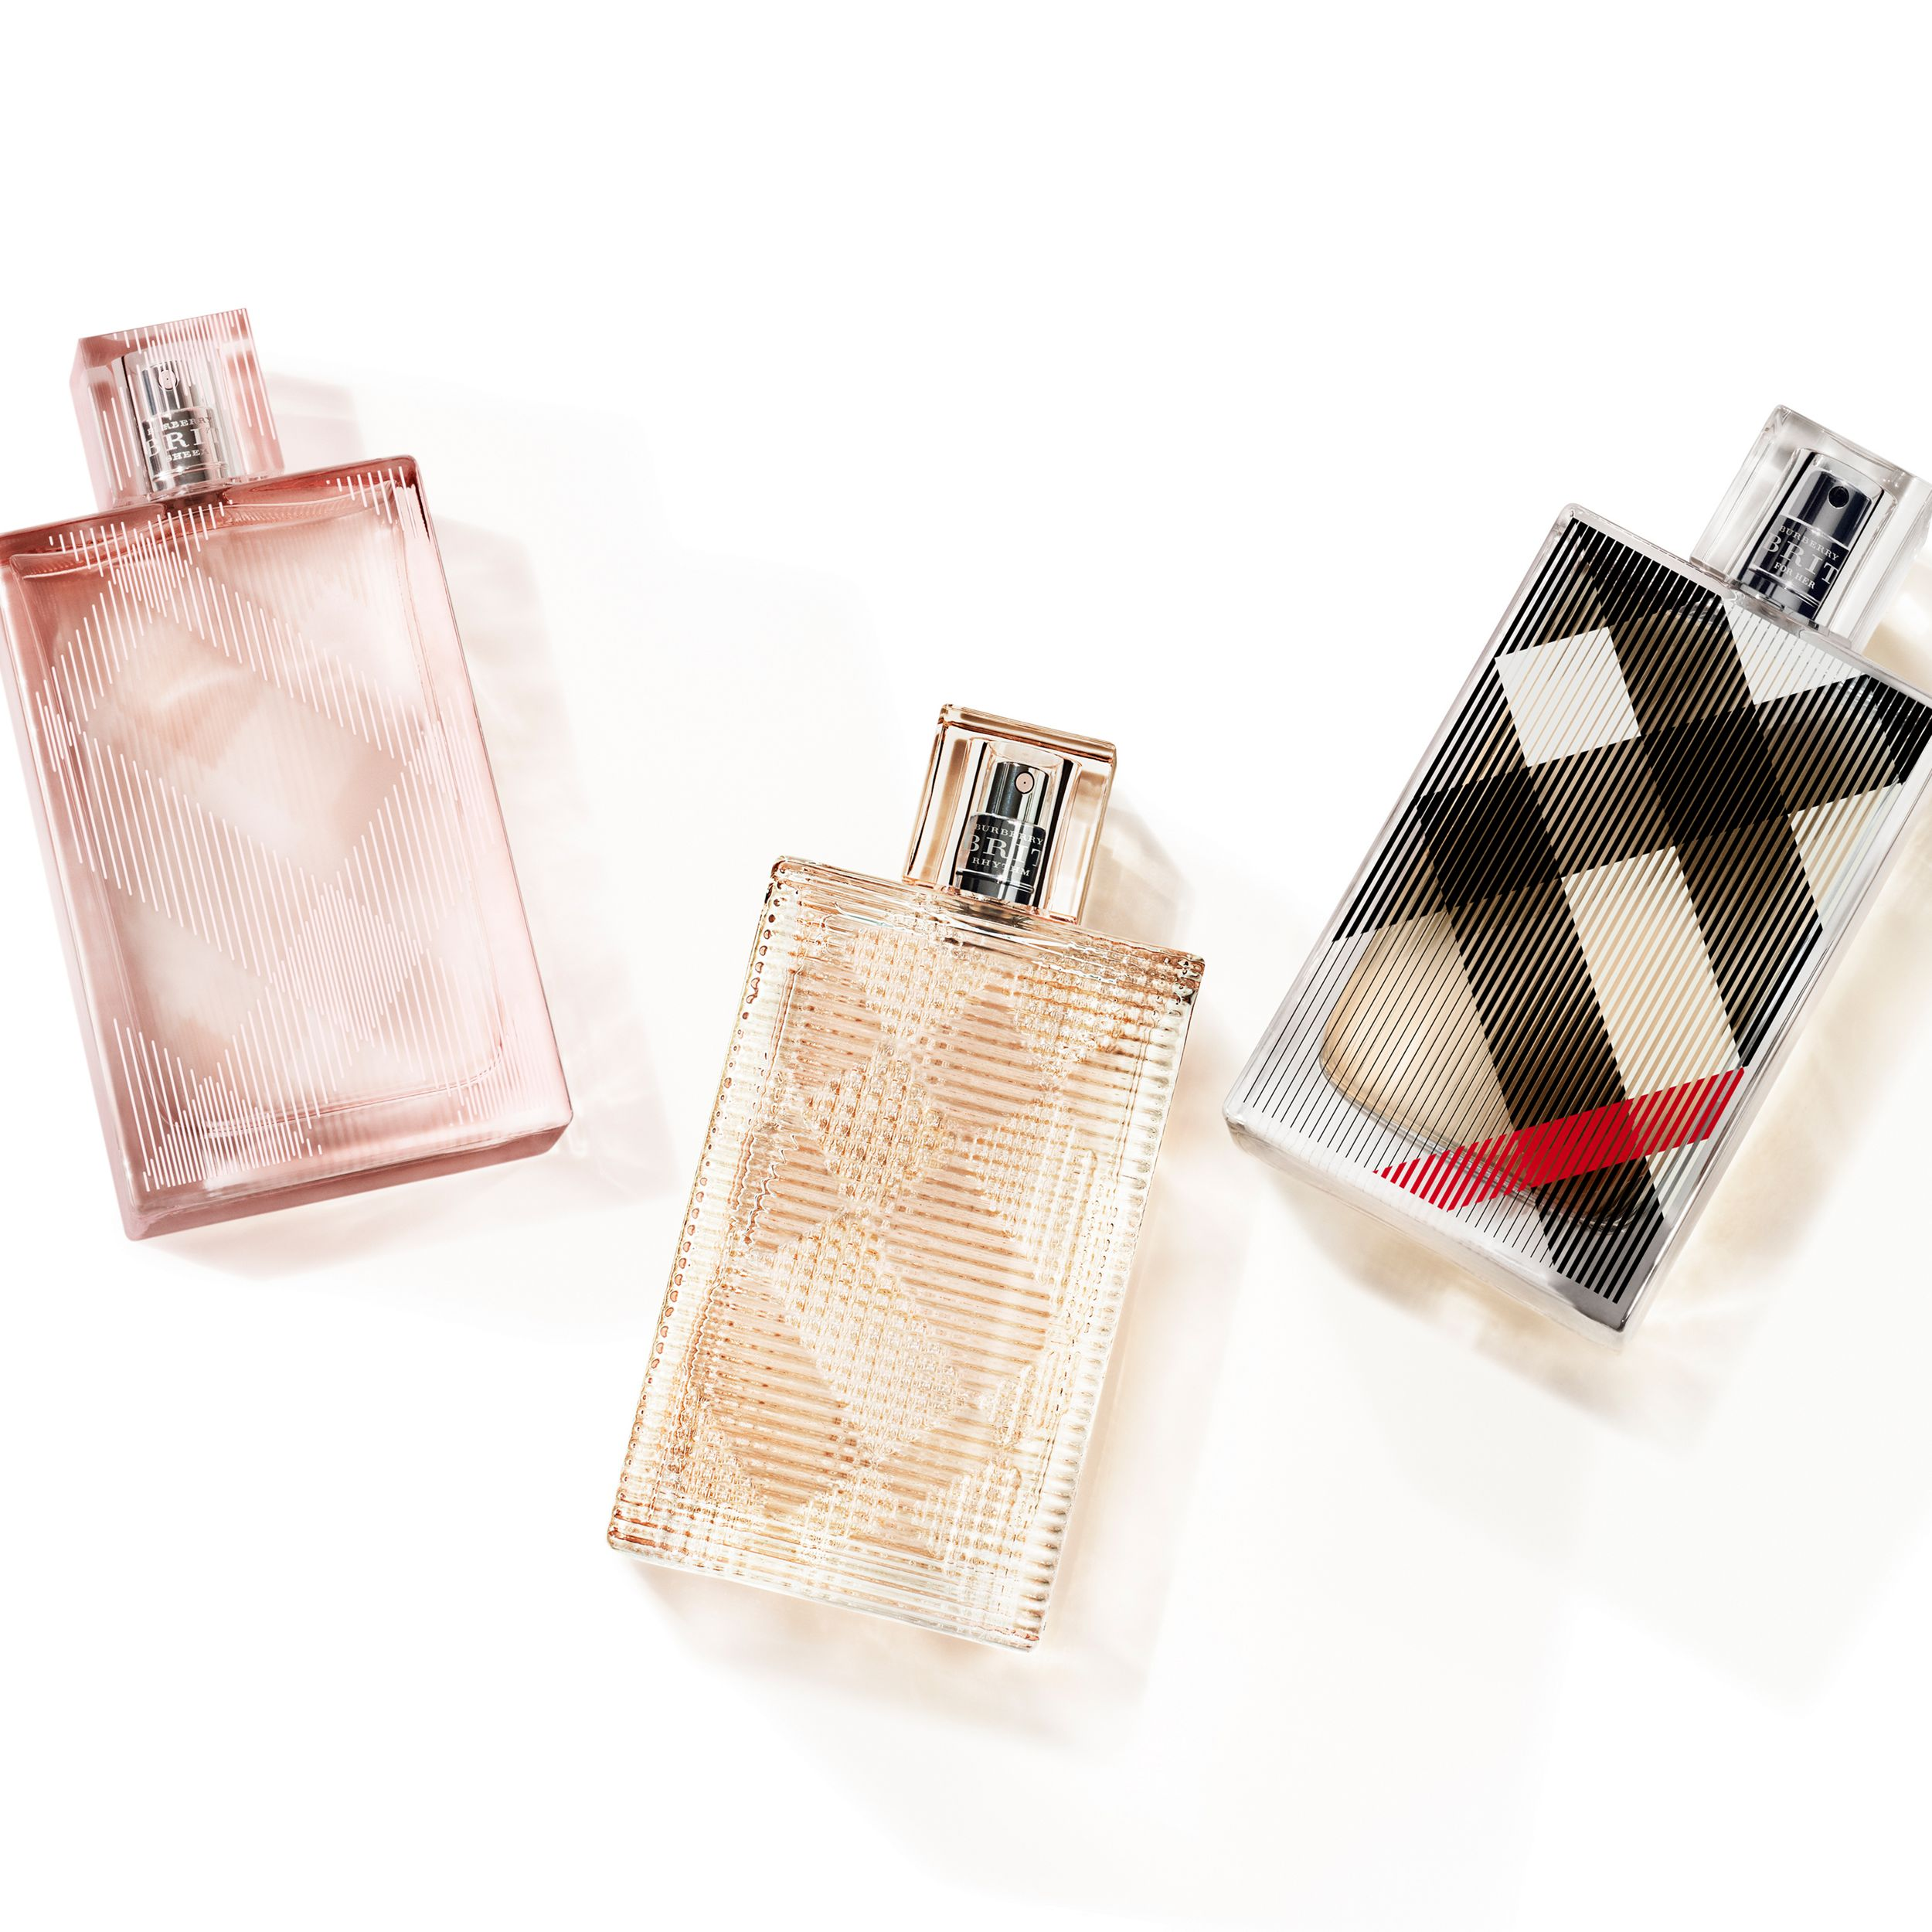 Eau de Toilette Burberry Brit For Her 100 ml - Femme | Burberry Canada - 3